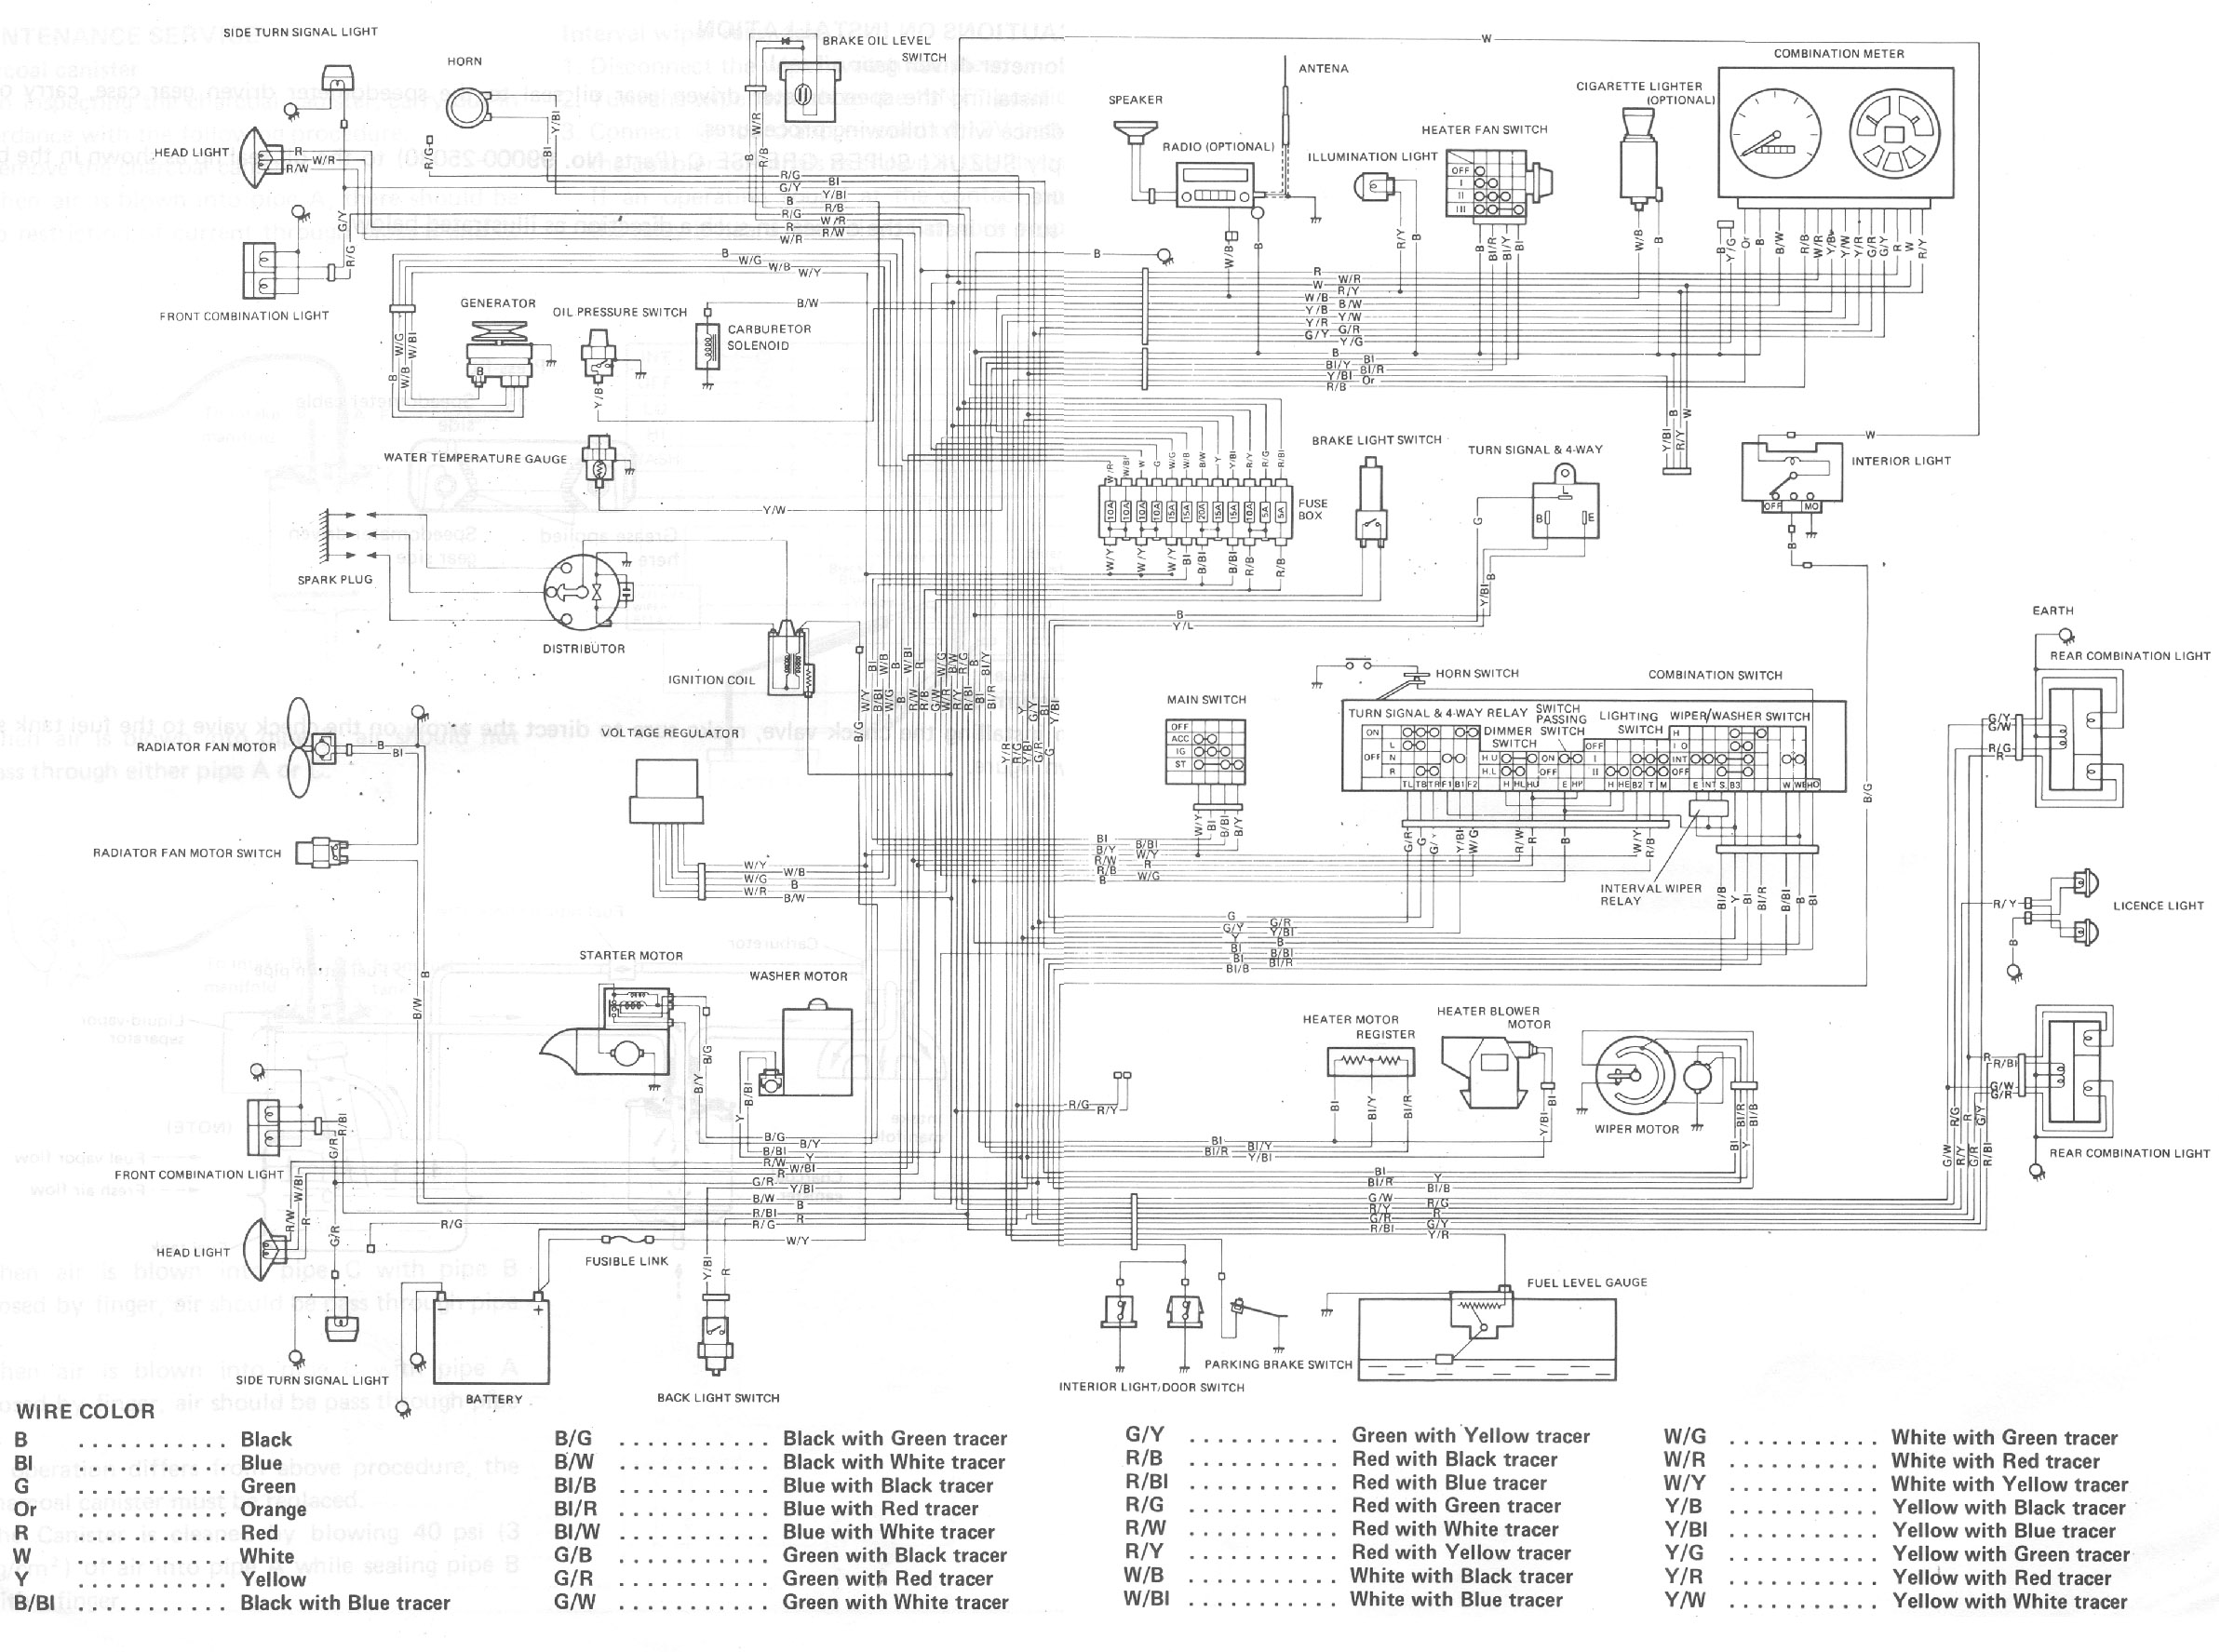 Electric_diagram bad boy buggy wiring diagram 36 volt ezgo wiring diagram 1997 roketa 250cc atv wiring diagram at webbmarketing.co